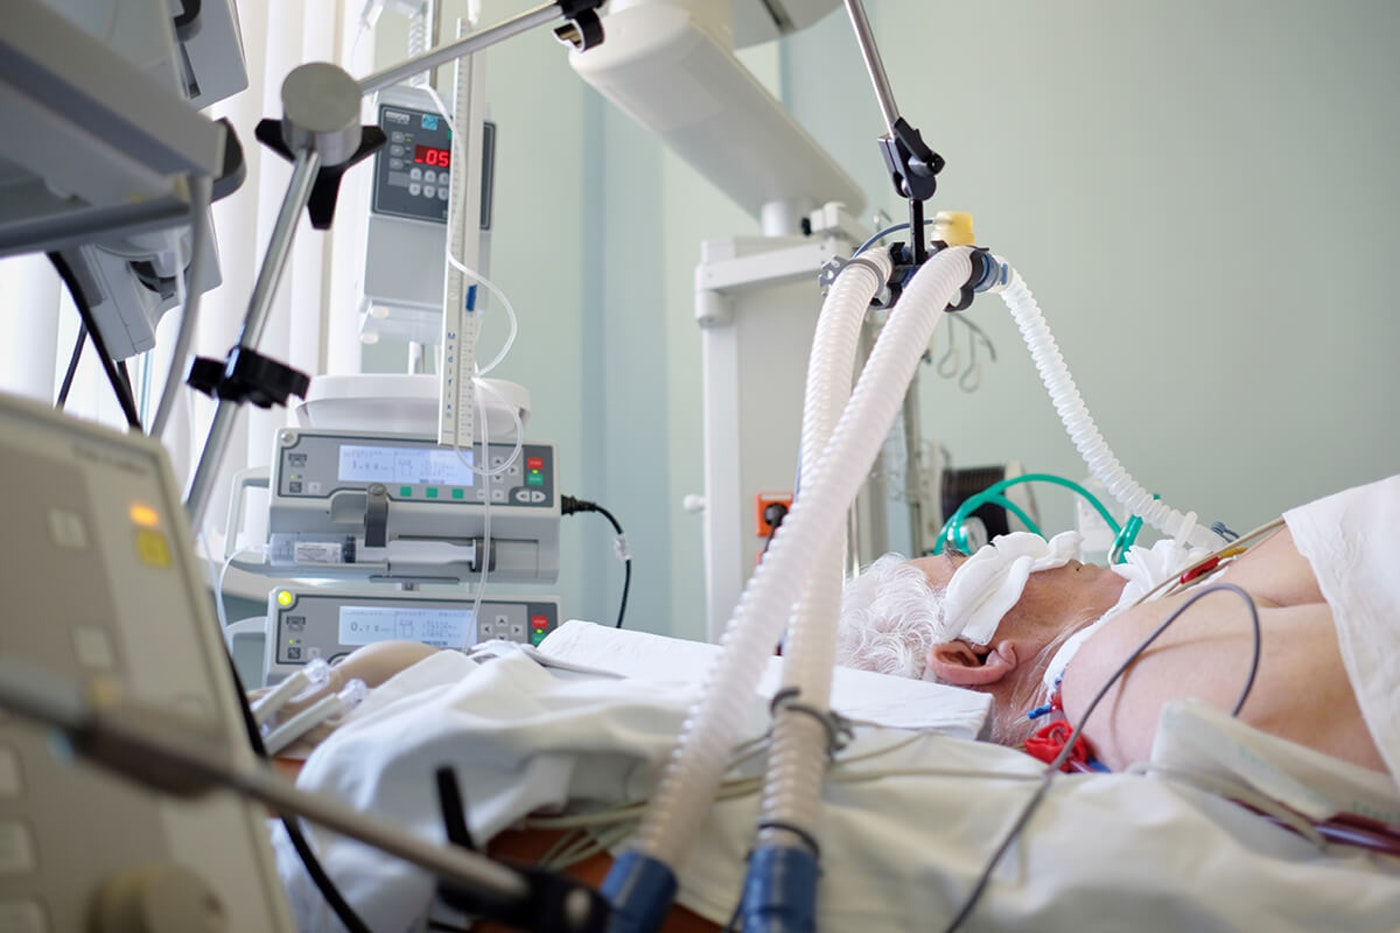 elderly man in hospital bed hooked up to ventilator